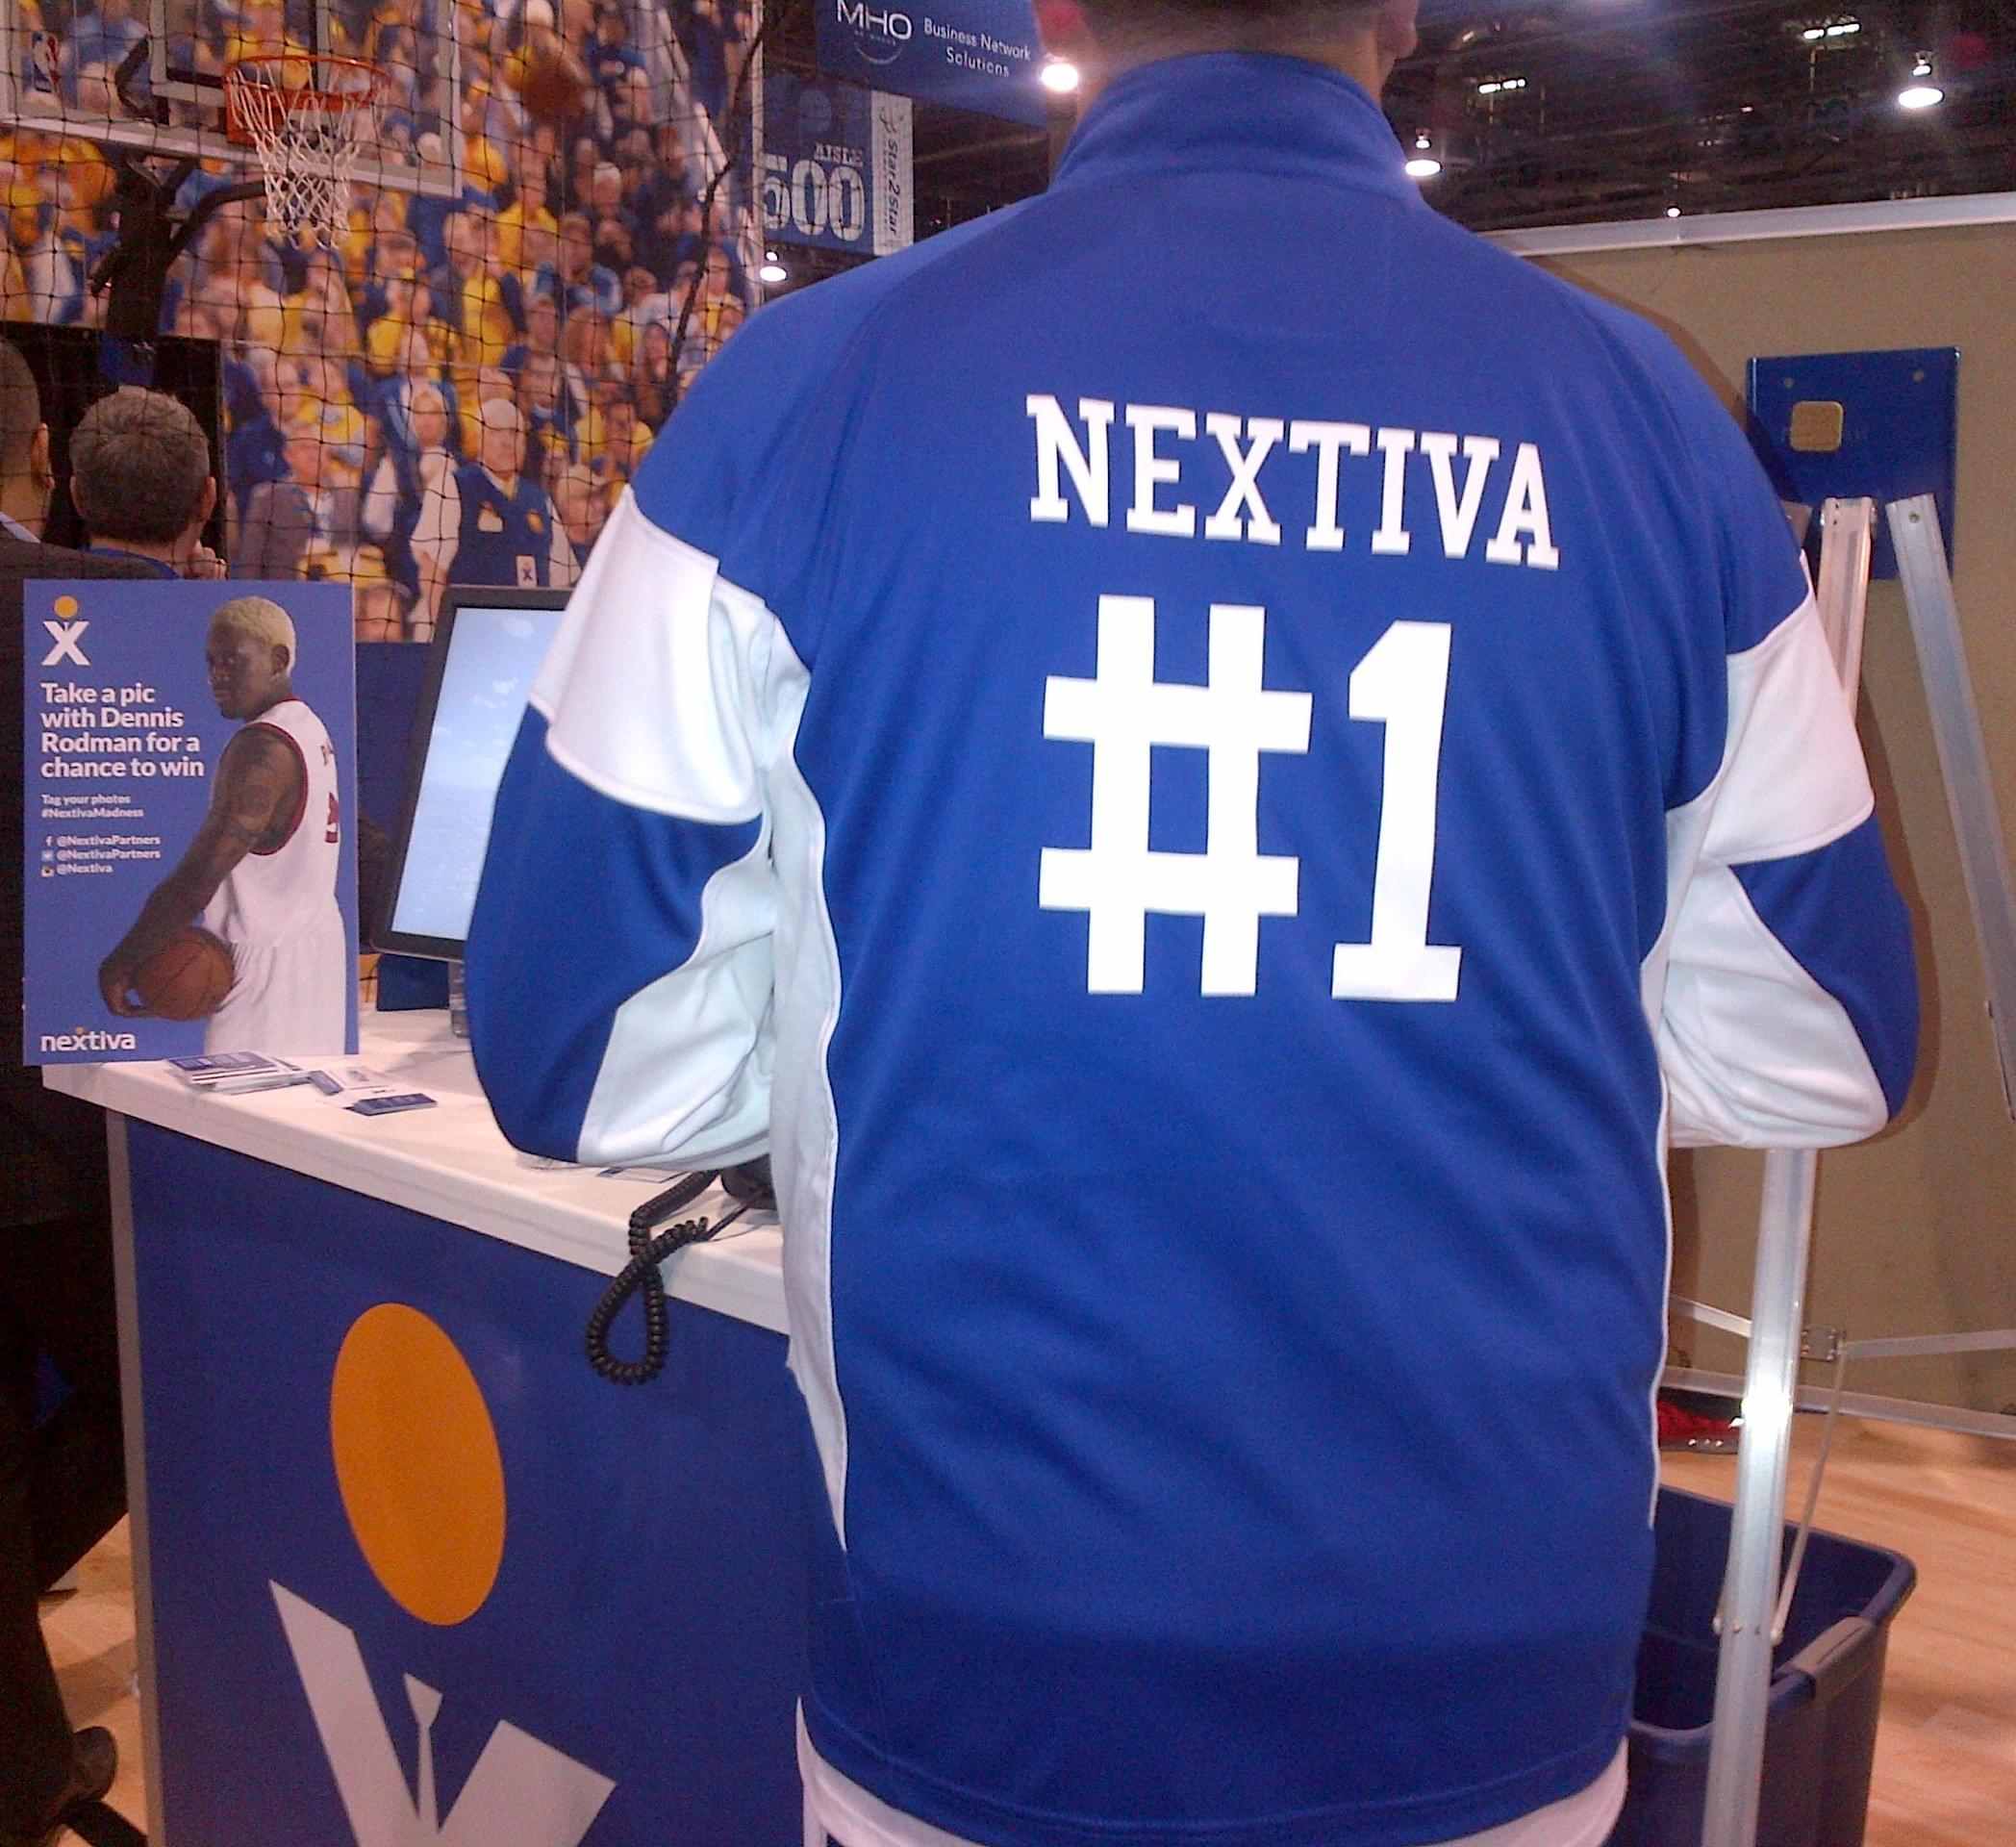 Channel Partners Spotlight on Nextiva – Winning the Loose Balls!